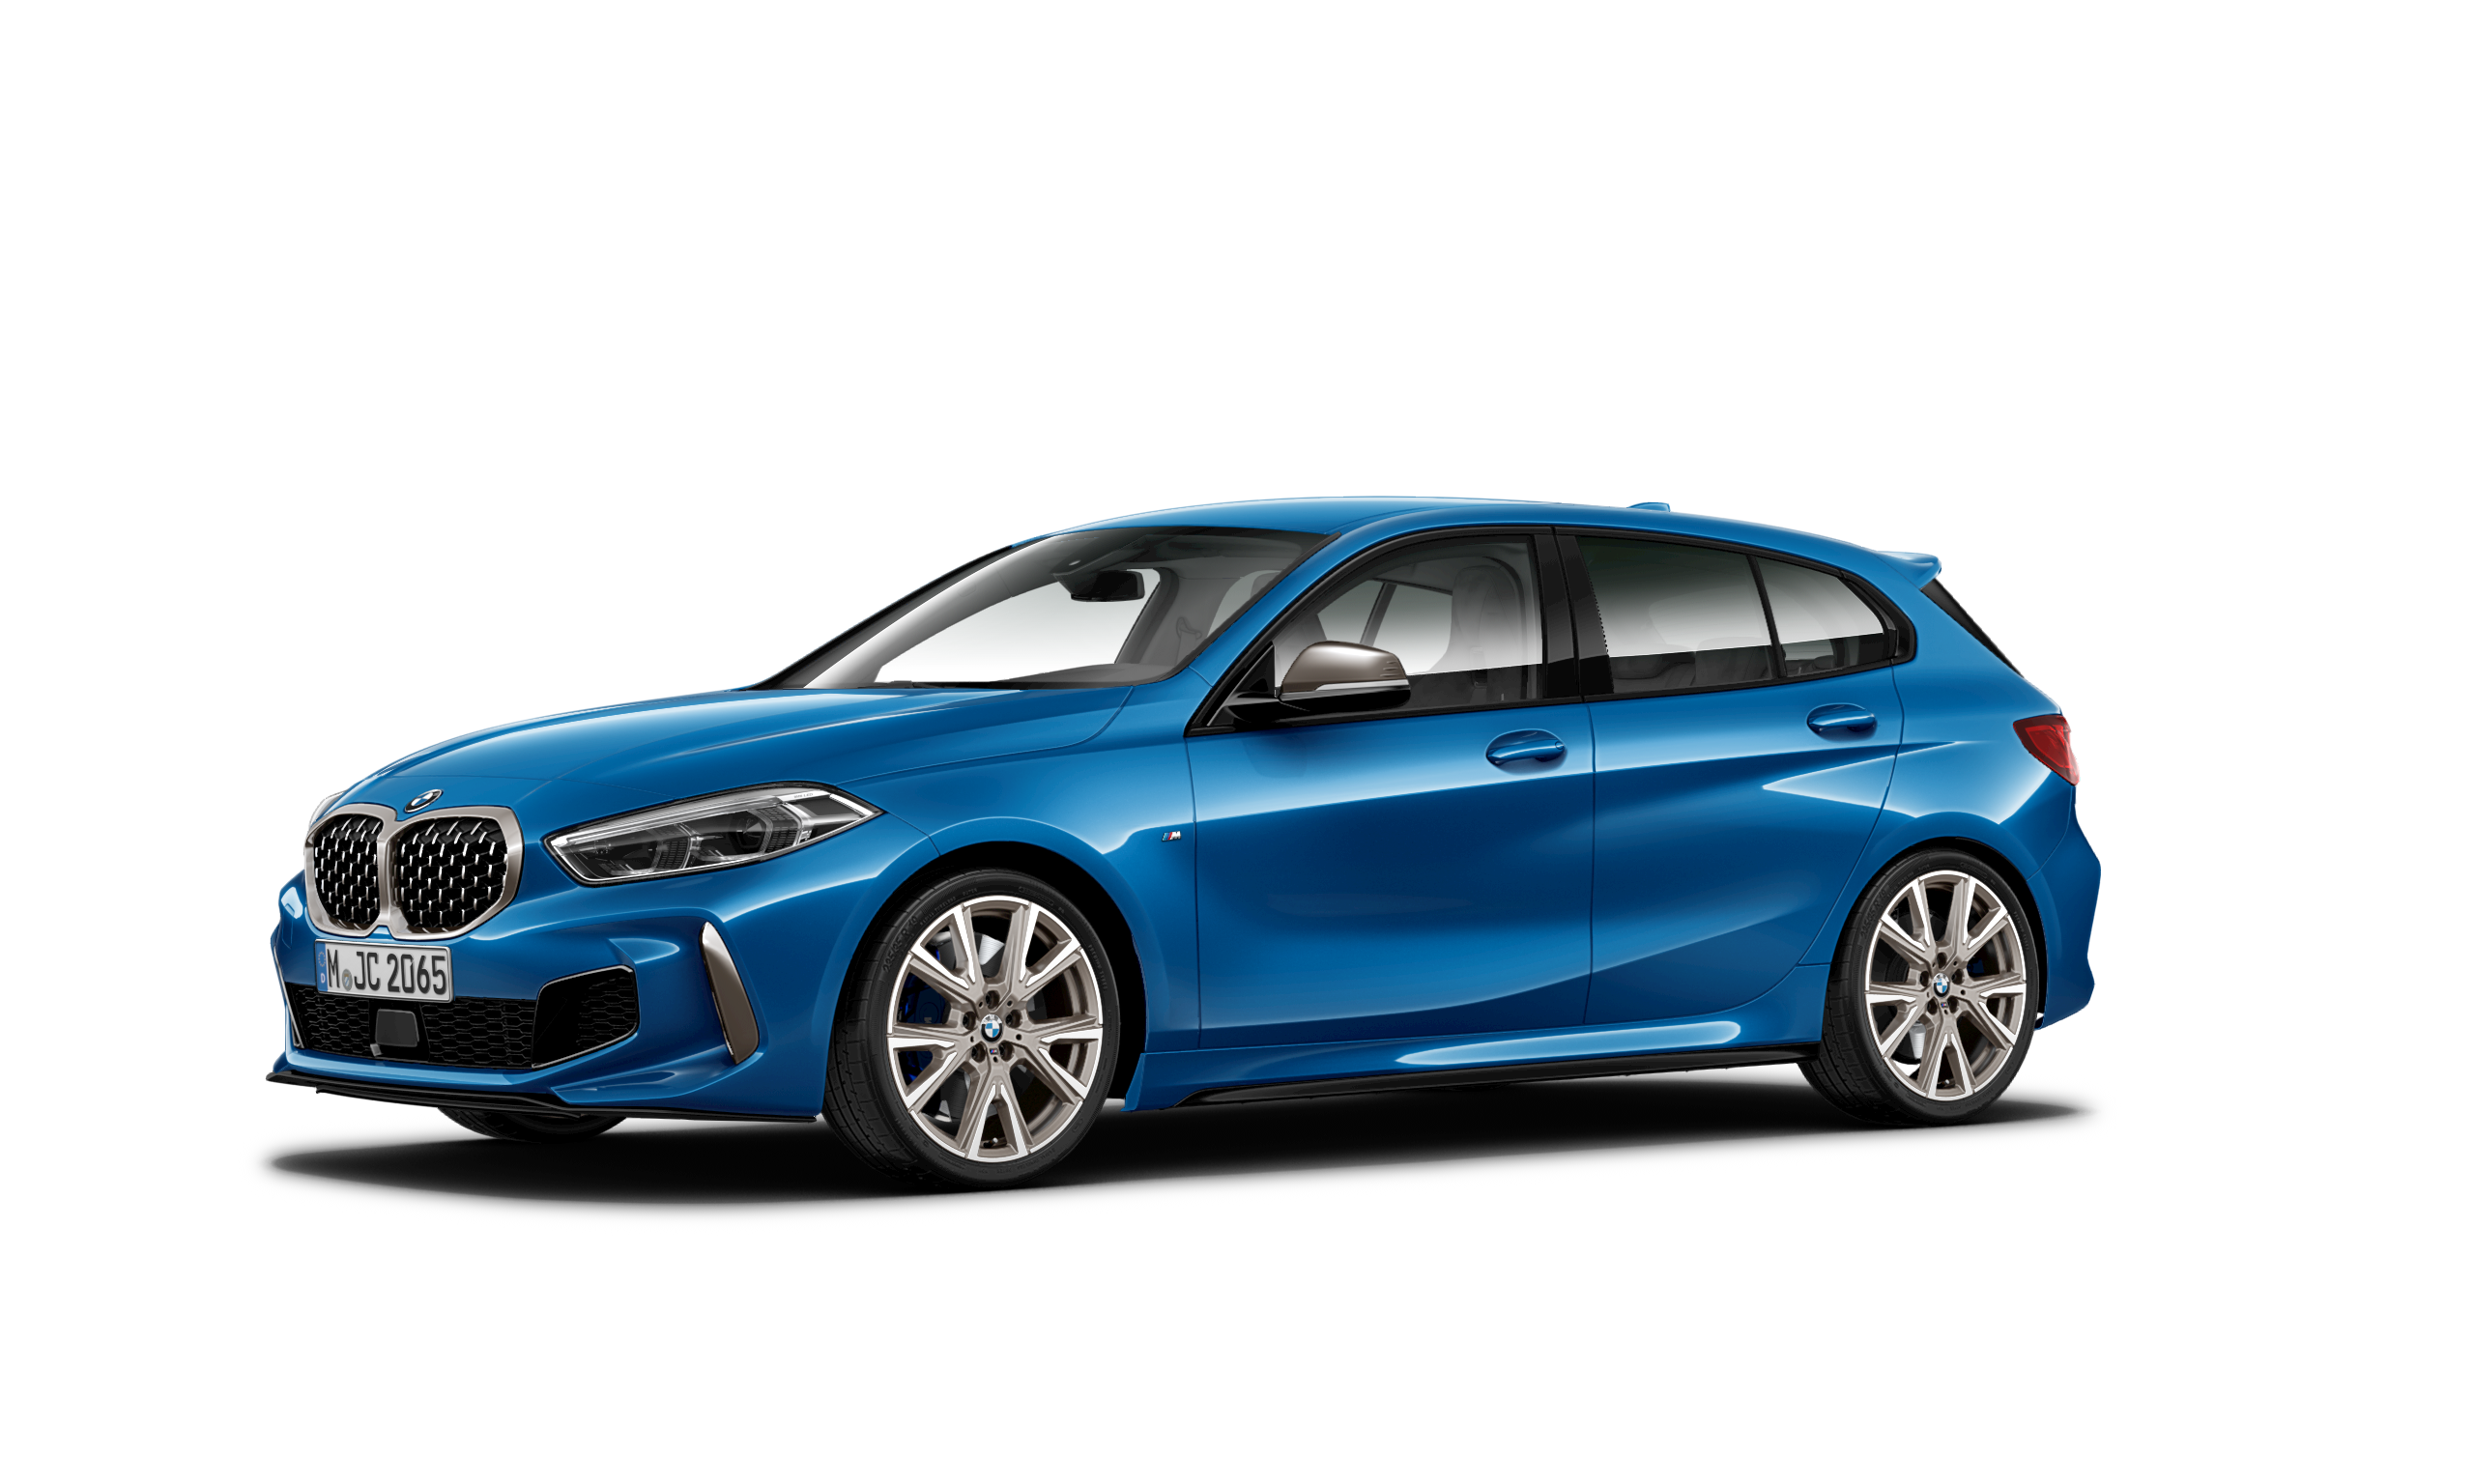 All Bmw Models Convertible Sedan And Sports Car Bmw South Africa